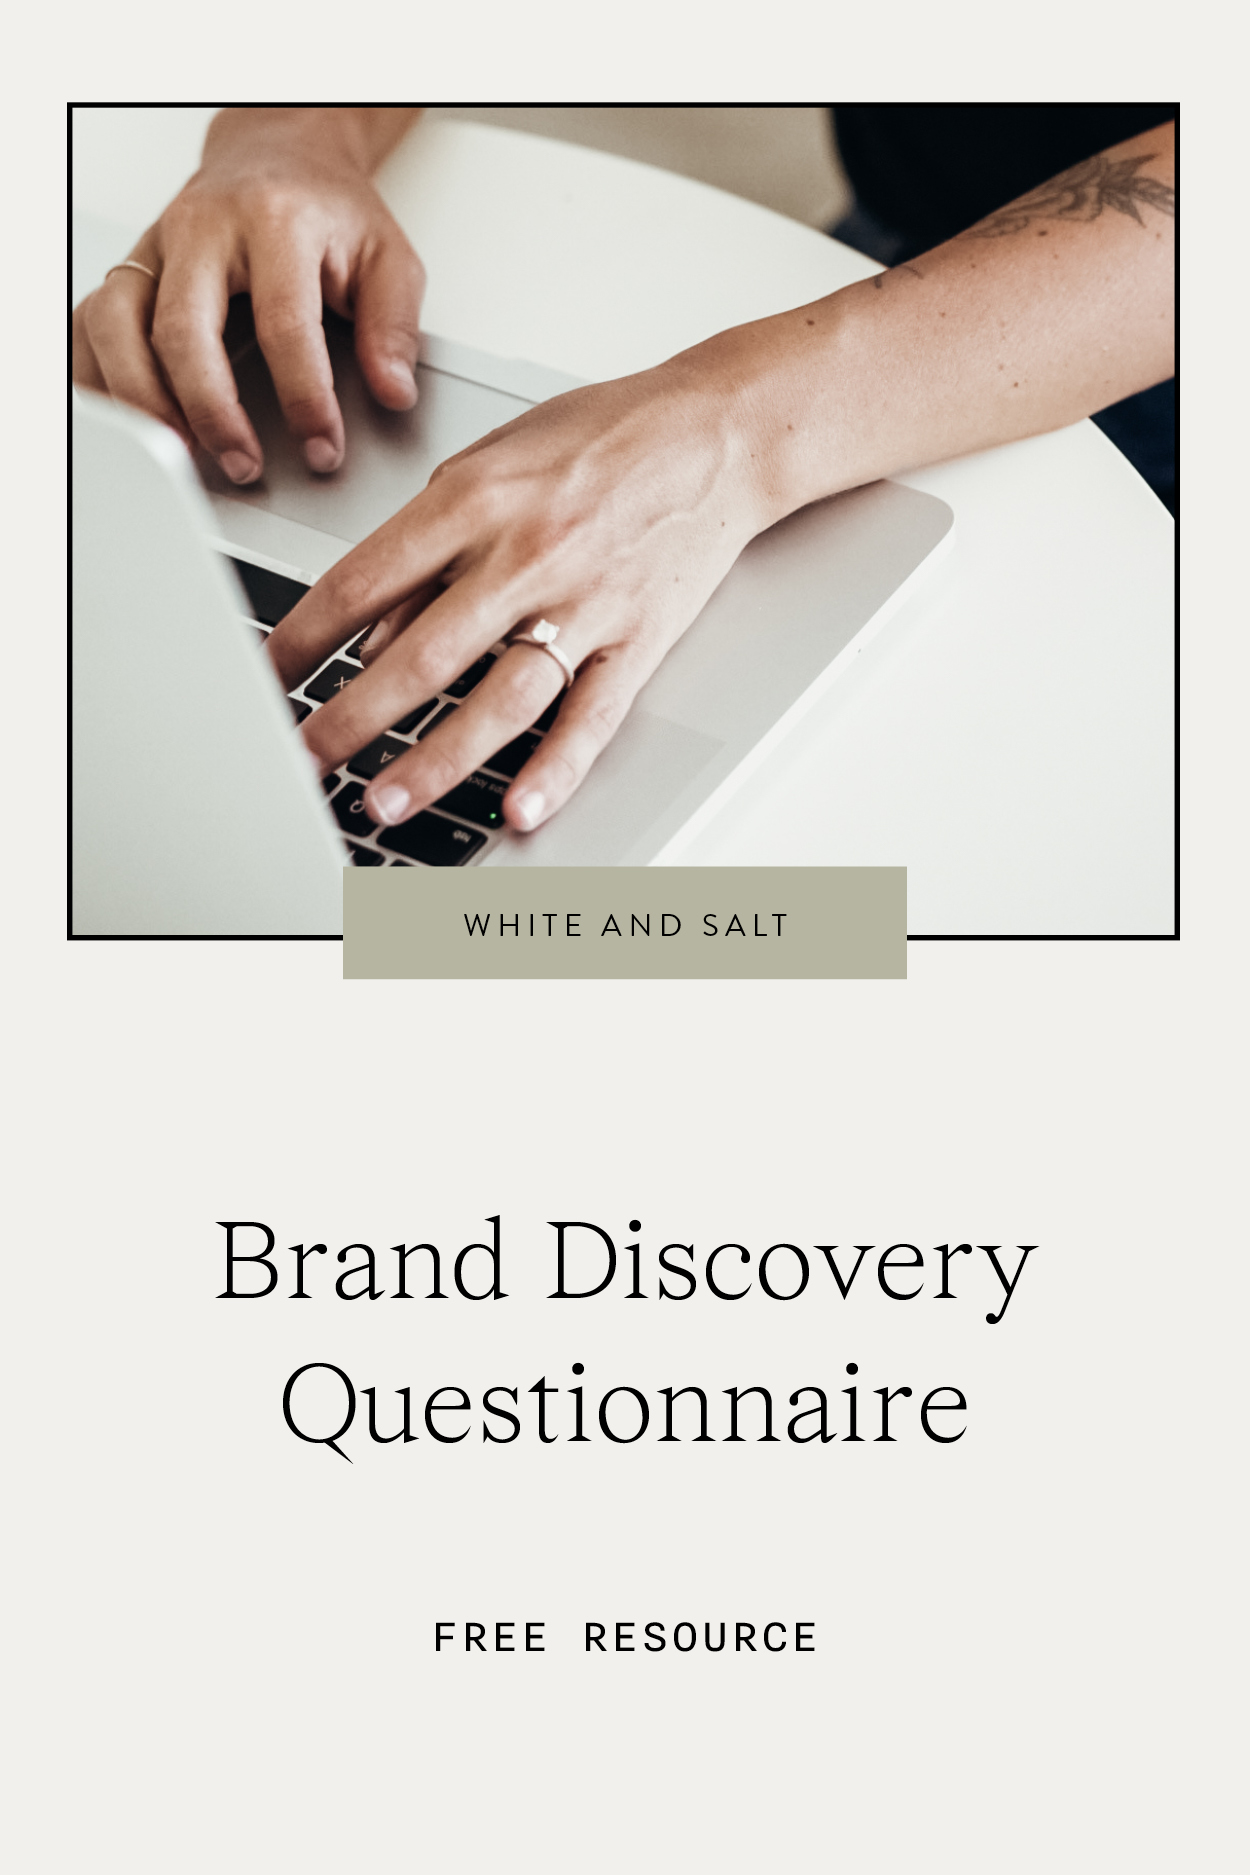 Brand Discovery Questionnaire.jpg